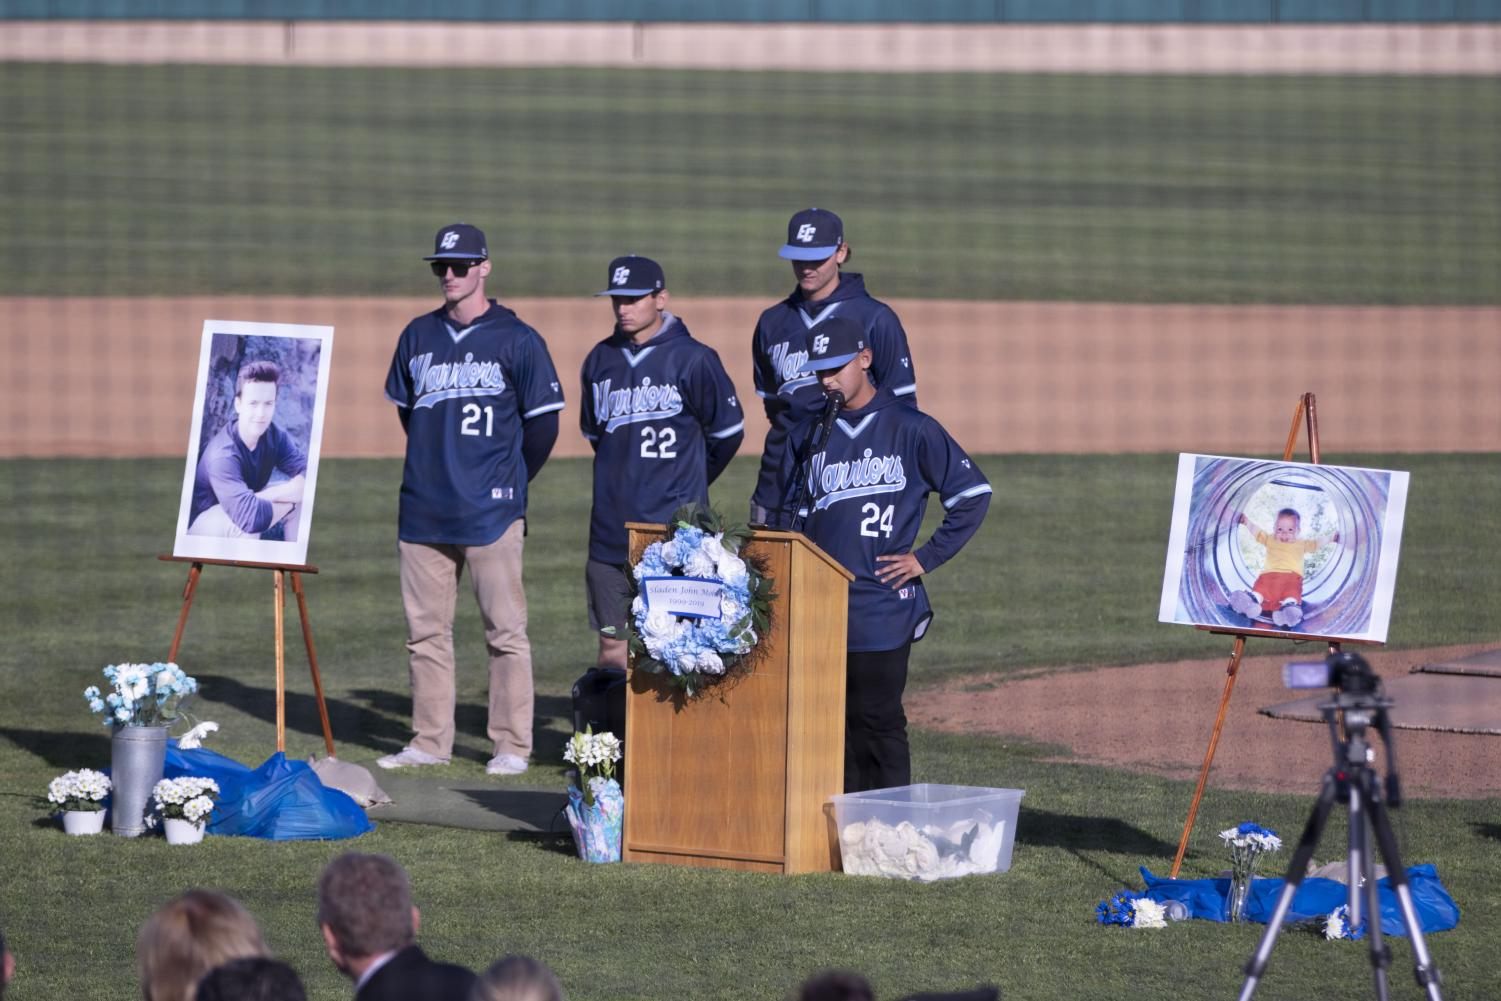 Joseph Brazil gives a speech at Sladen Mohl's memorial before Nathaniel Graves, Zach Findlay and Ty Conrad speak sentiments of their own. Sladen Mohl was the Warriors' starting catcher. Photo credit: Delesia Jackson